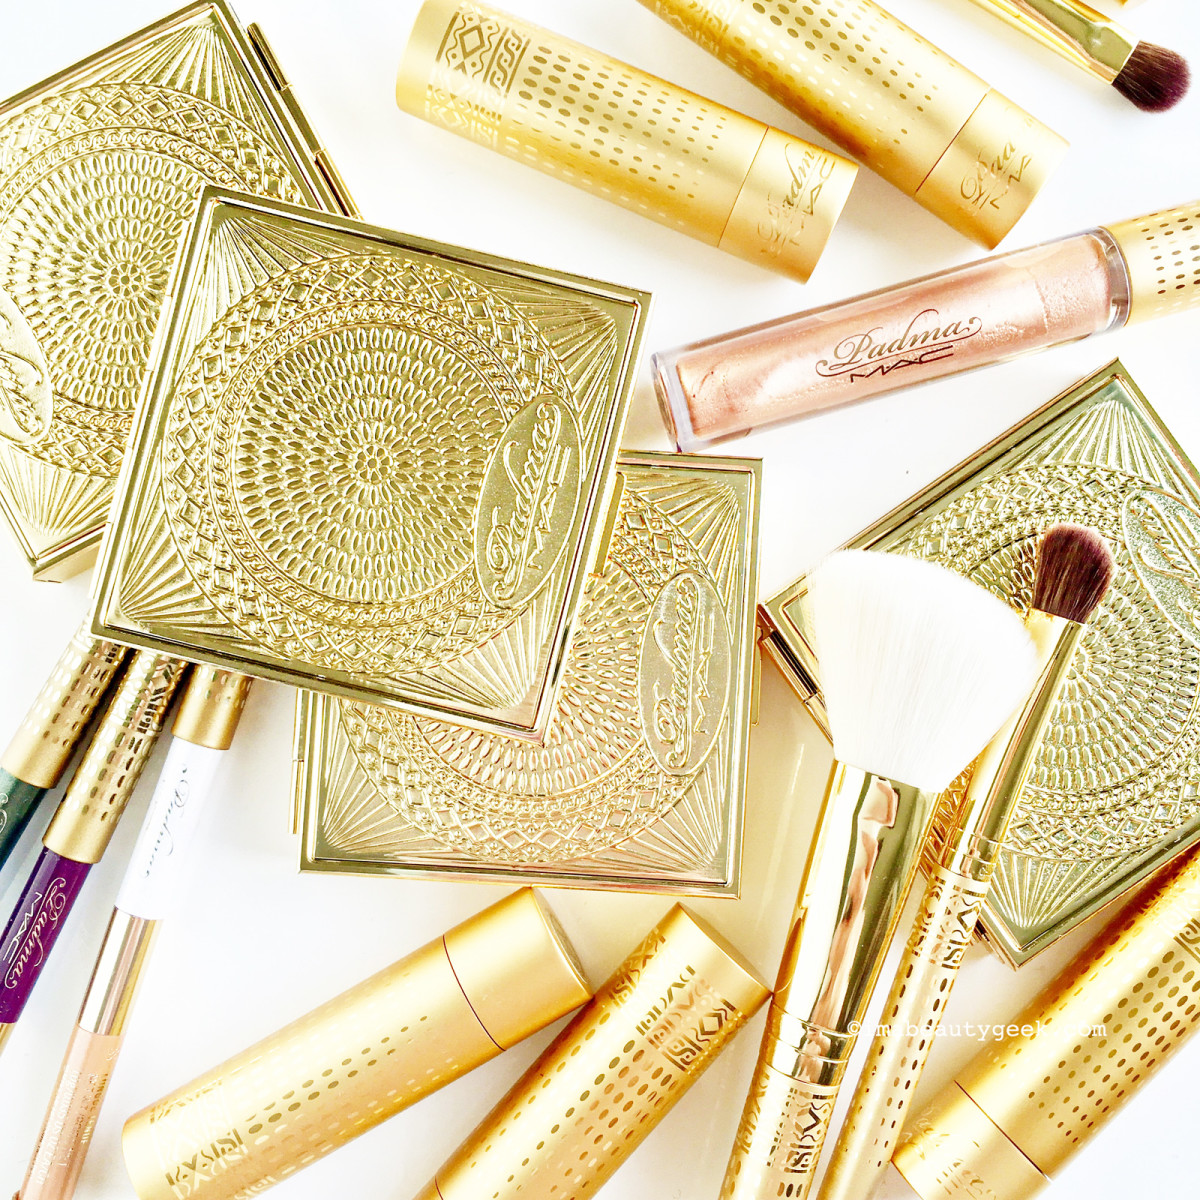 MAC Padma Lakshmi collection compacts, lipsticks, gloss, double-ended liners, and brushes